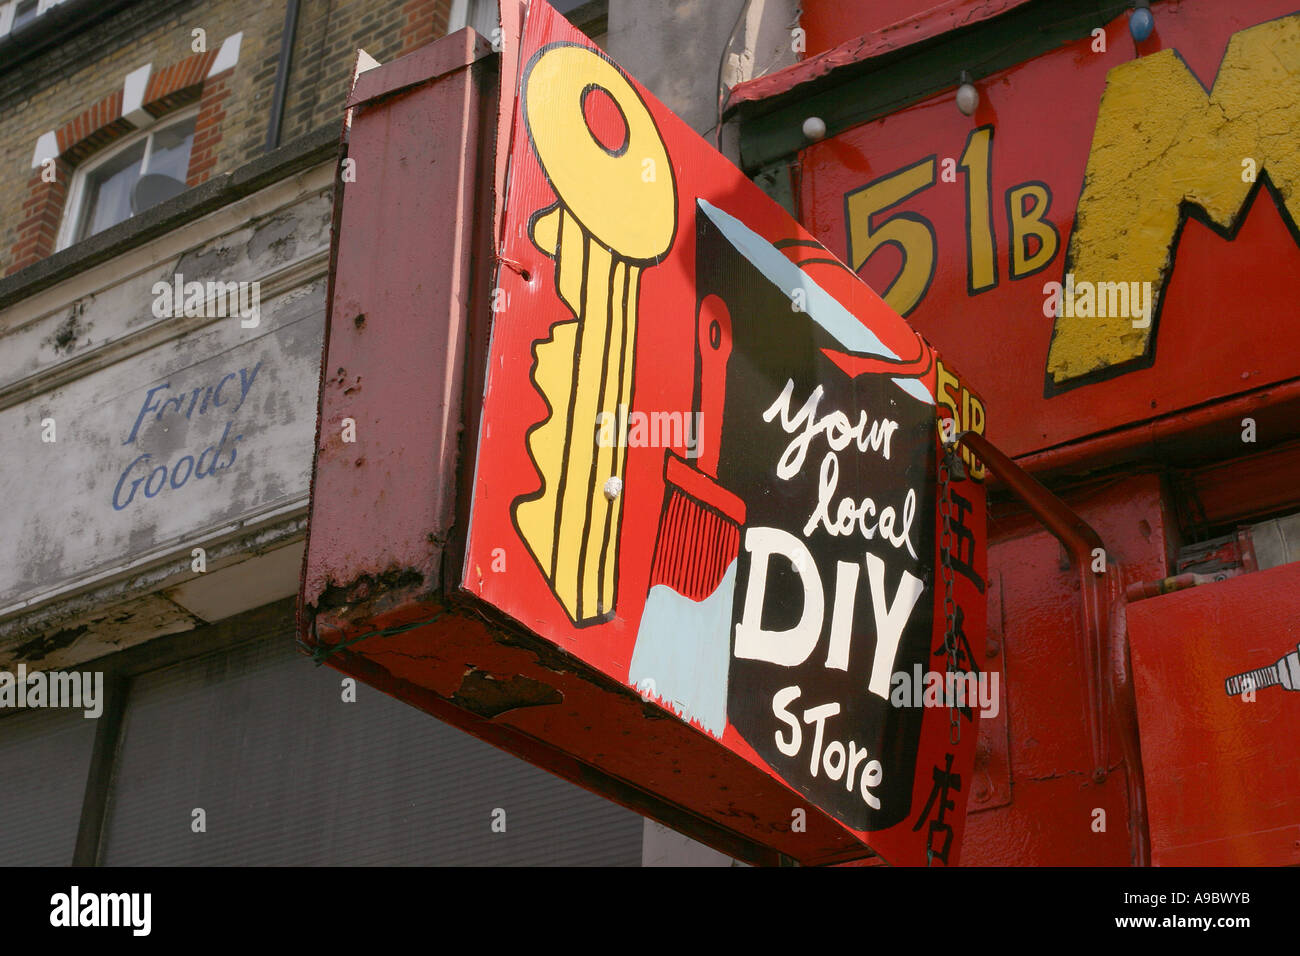 Diy london home stock photos diy london home stock images alamy a home made sign to a do it yourself shop in finsbury park london solutioingenieria Images